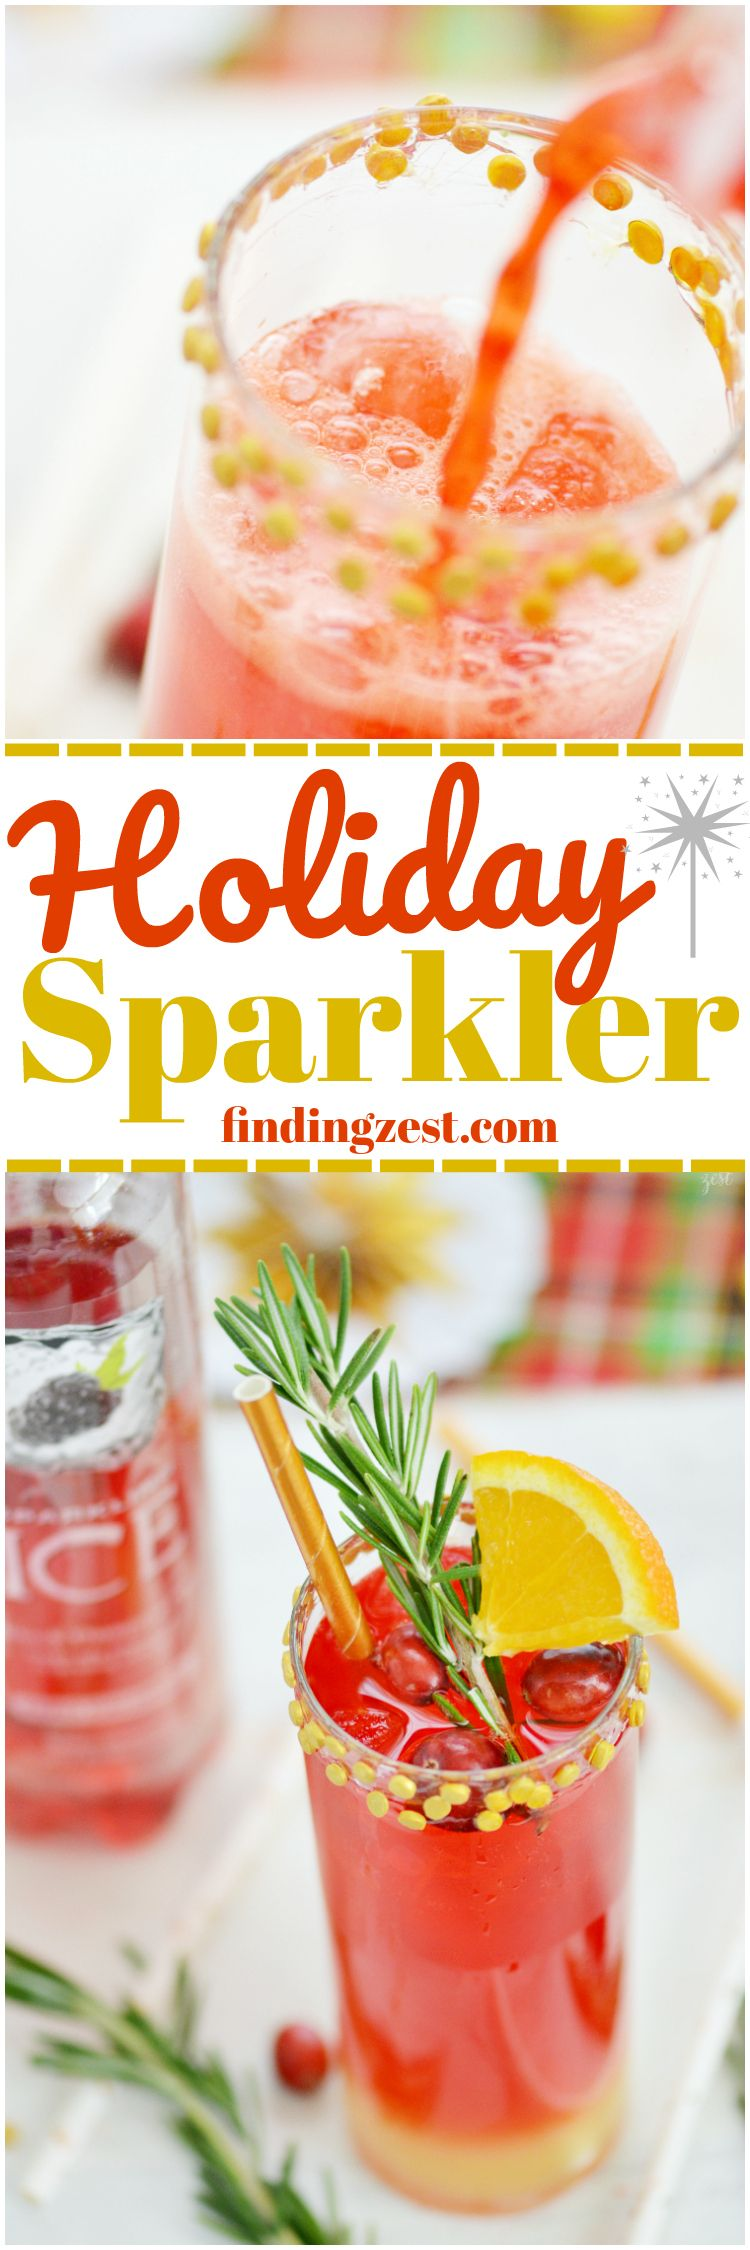 AD: Only three ingredients are required to make this Holiday Sparkler cocktail recipe which can easily be made into a mocktail! Add some sparkle to your party with this holiday drink. Garnish with rosemary, cranberries and oranges and a gold confetti rimmed glass for an extra festive look! #BeNotBland #cocktail #mocktail #drinkup